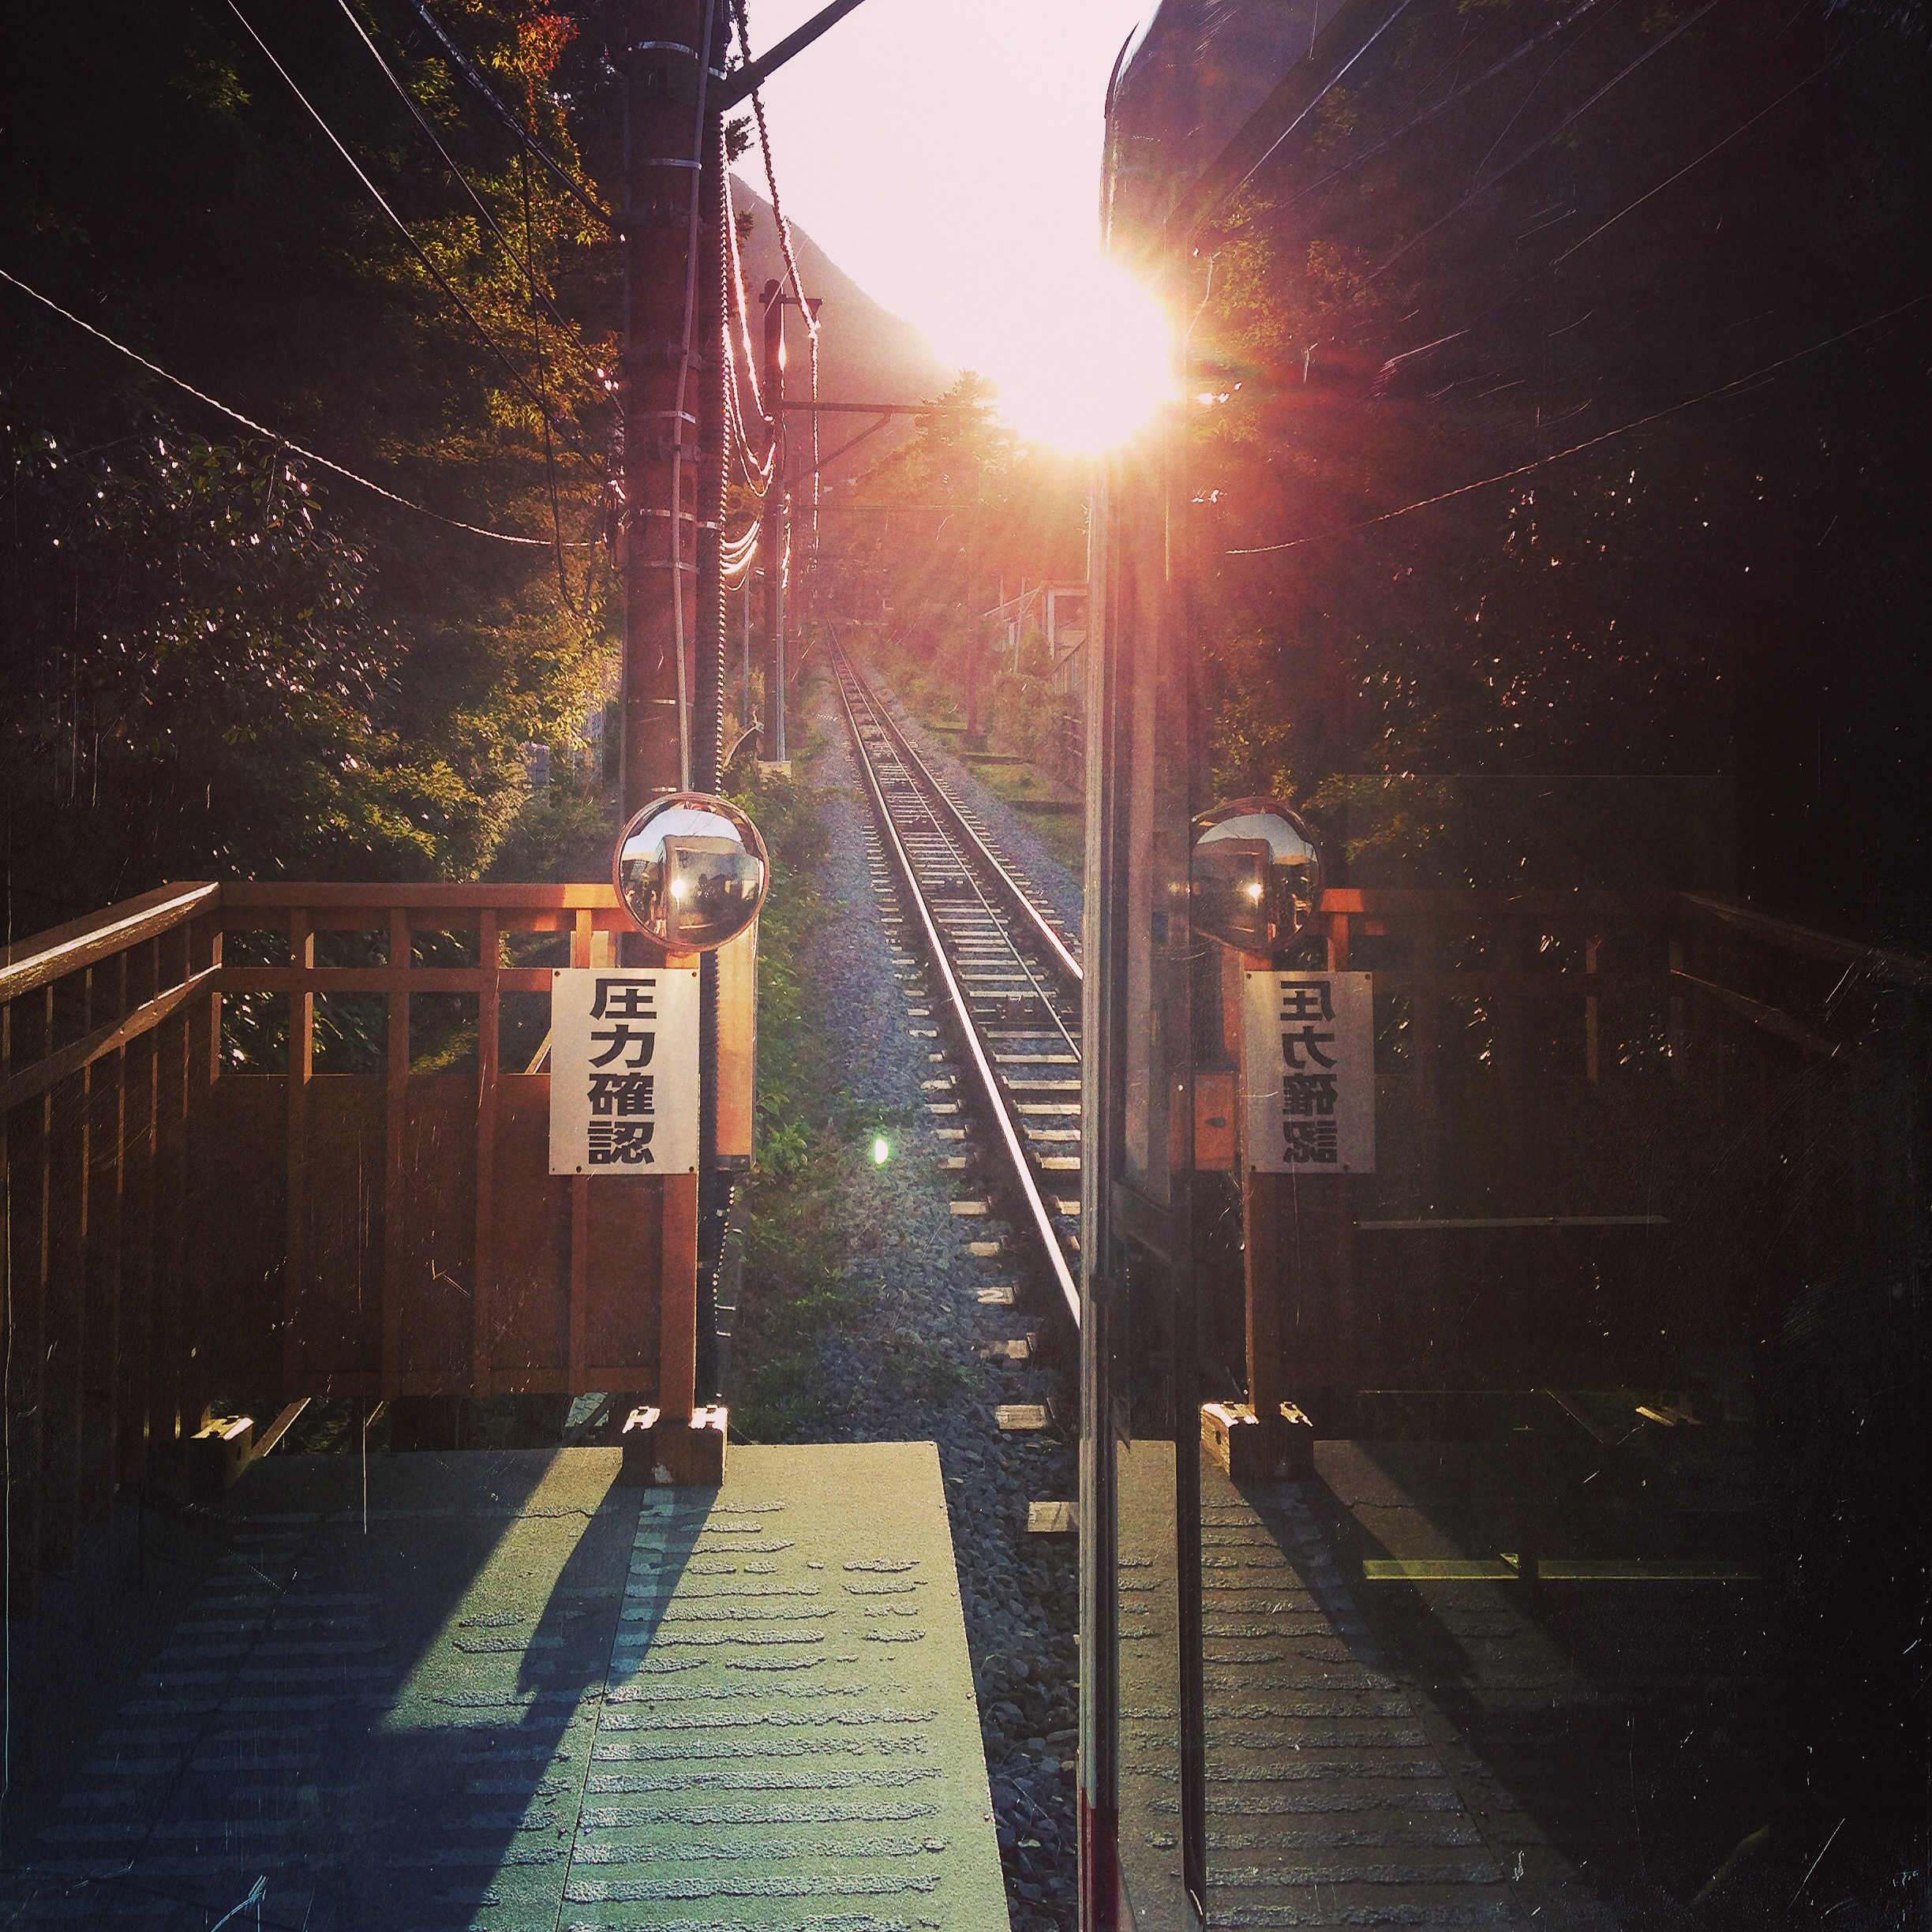 Once the rain stopped, we rode the funicular